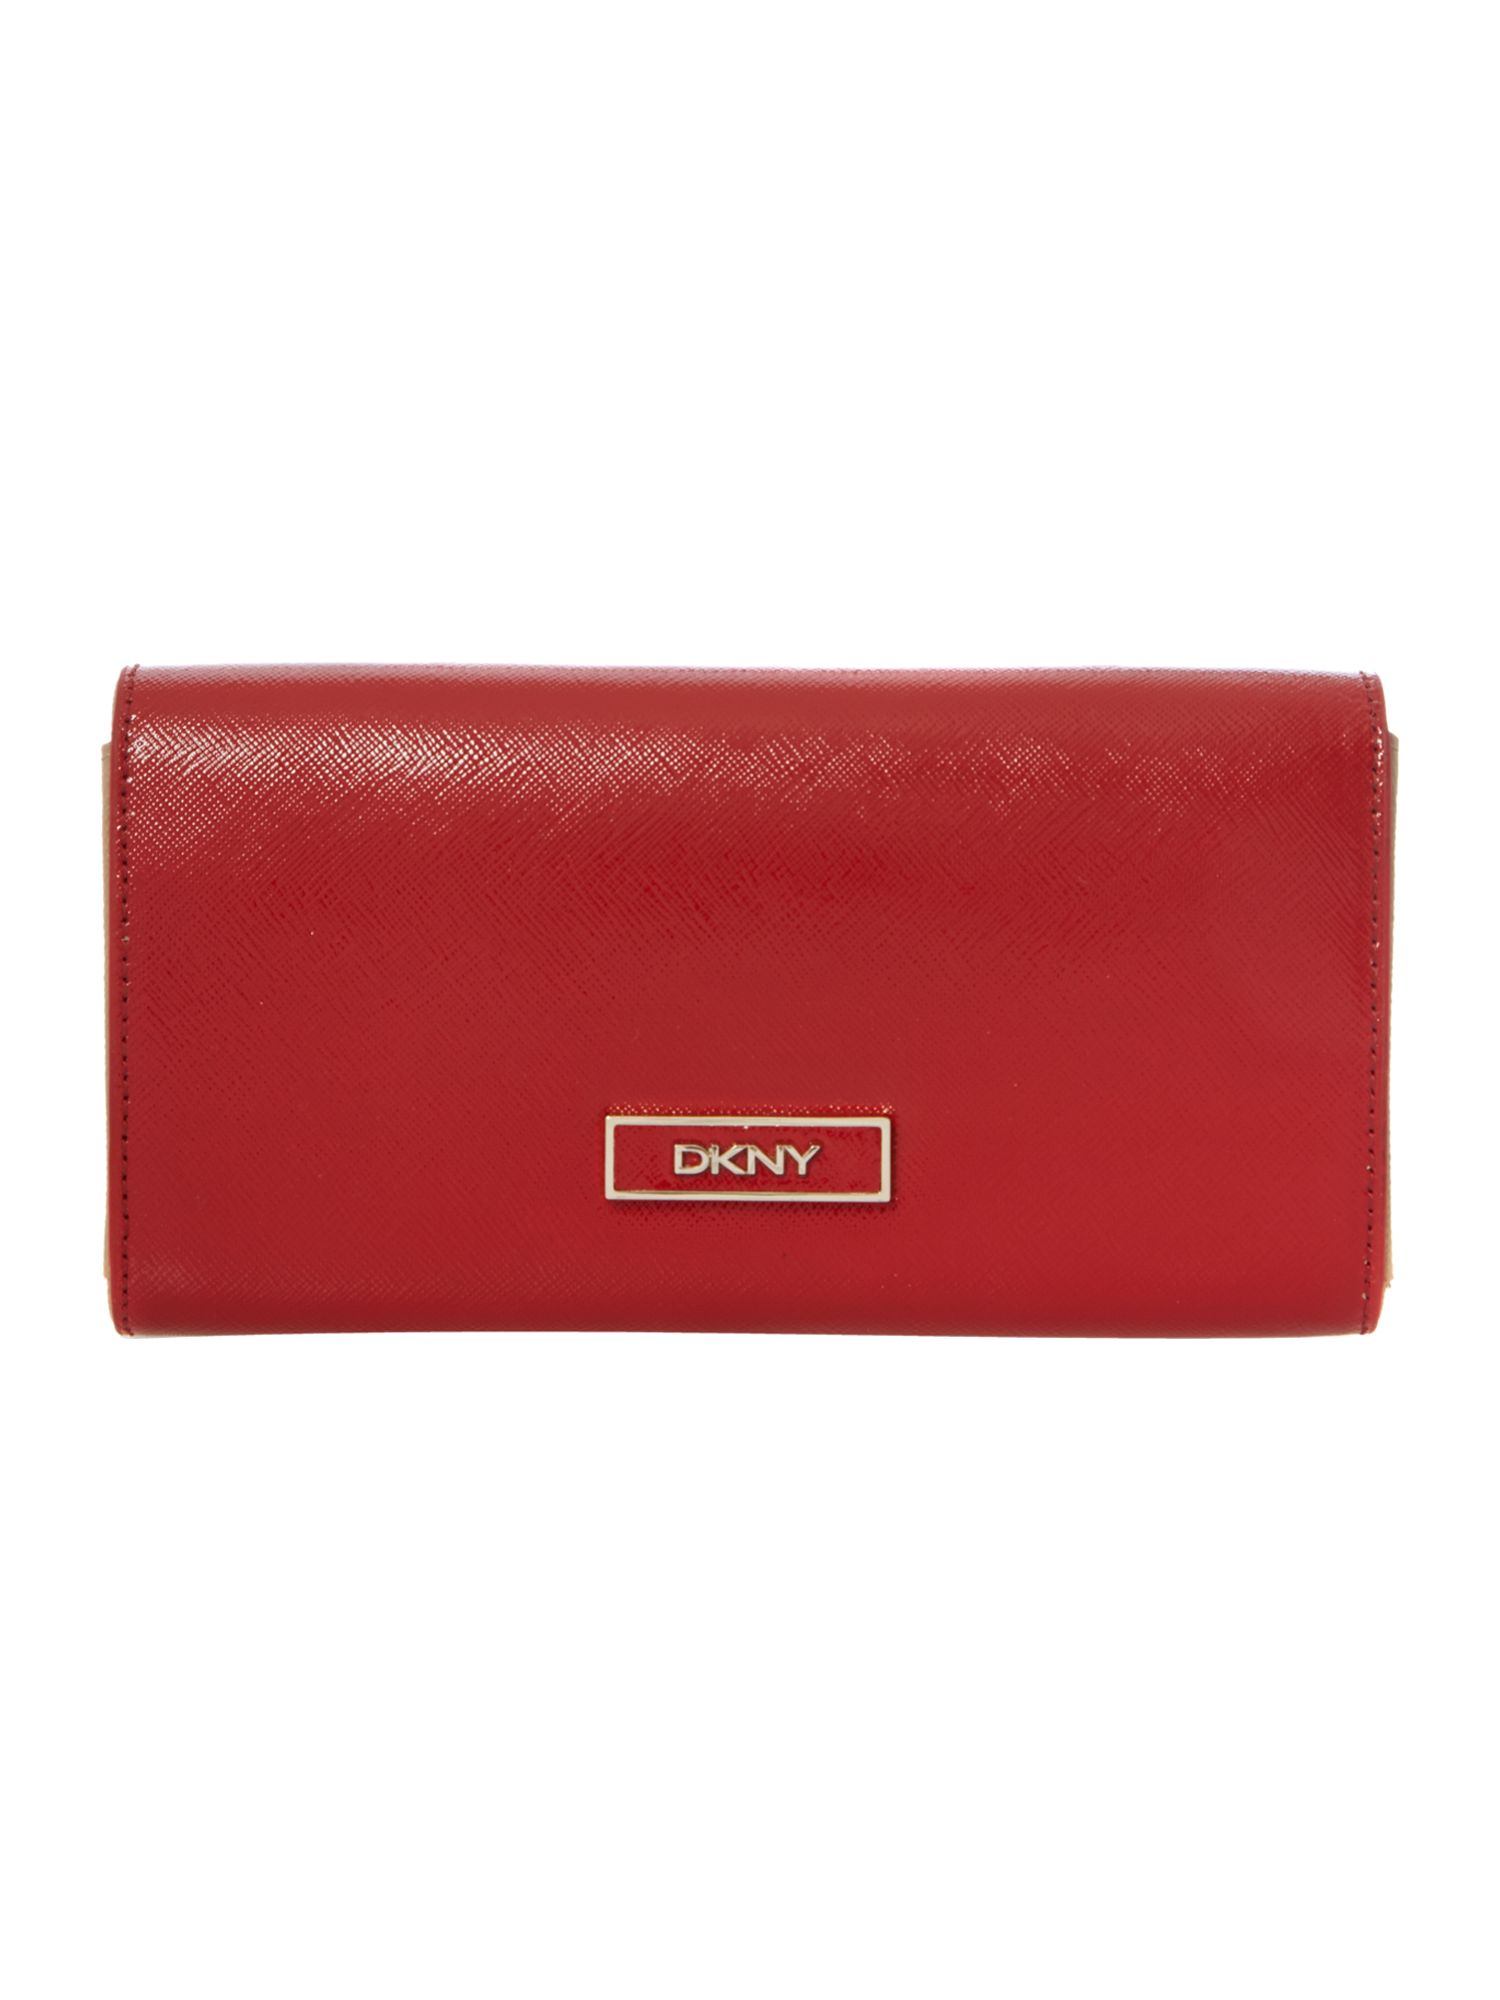 Shiny saffiano red stud envelope purse